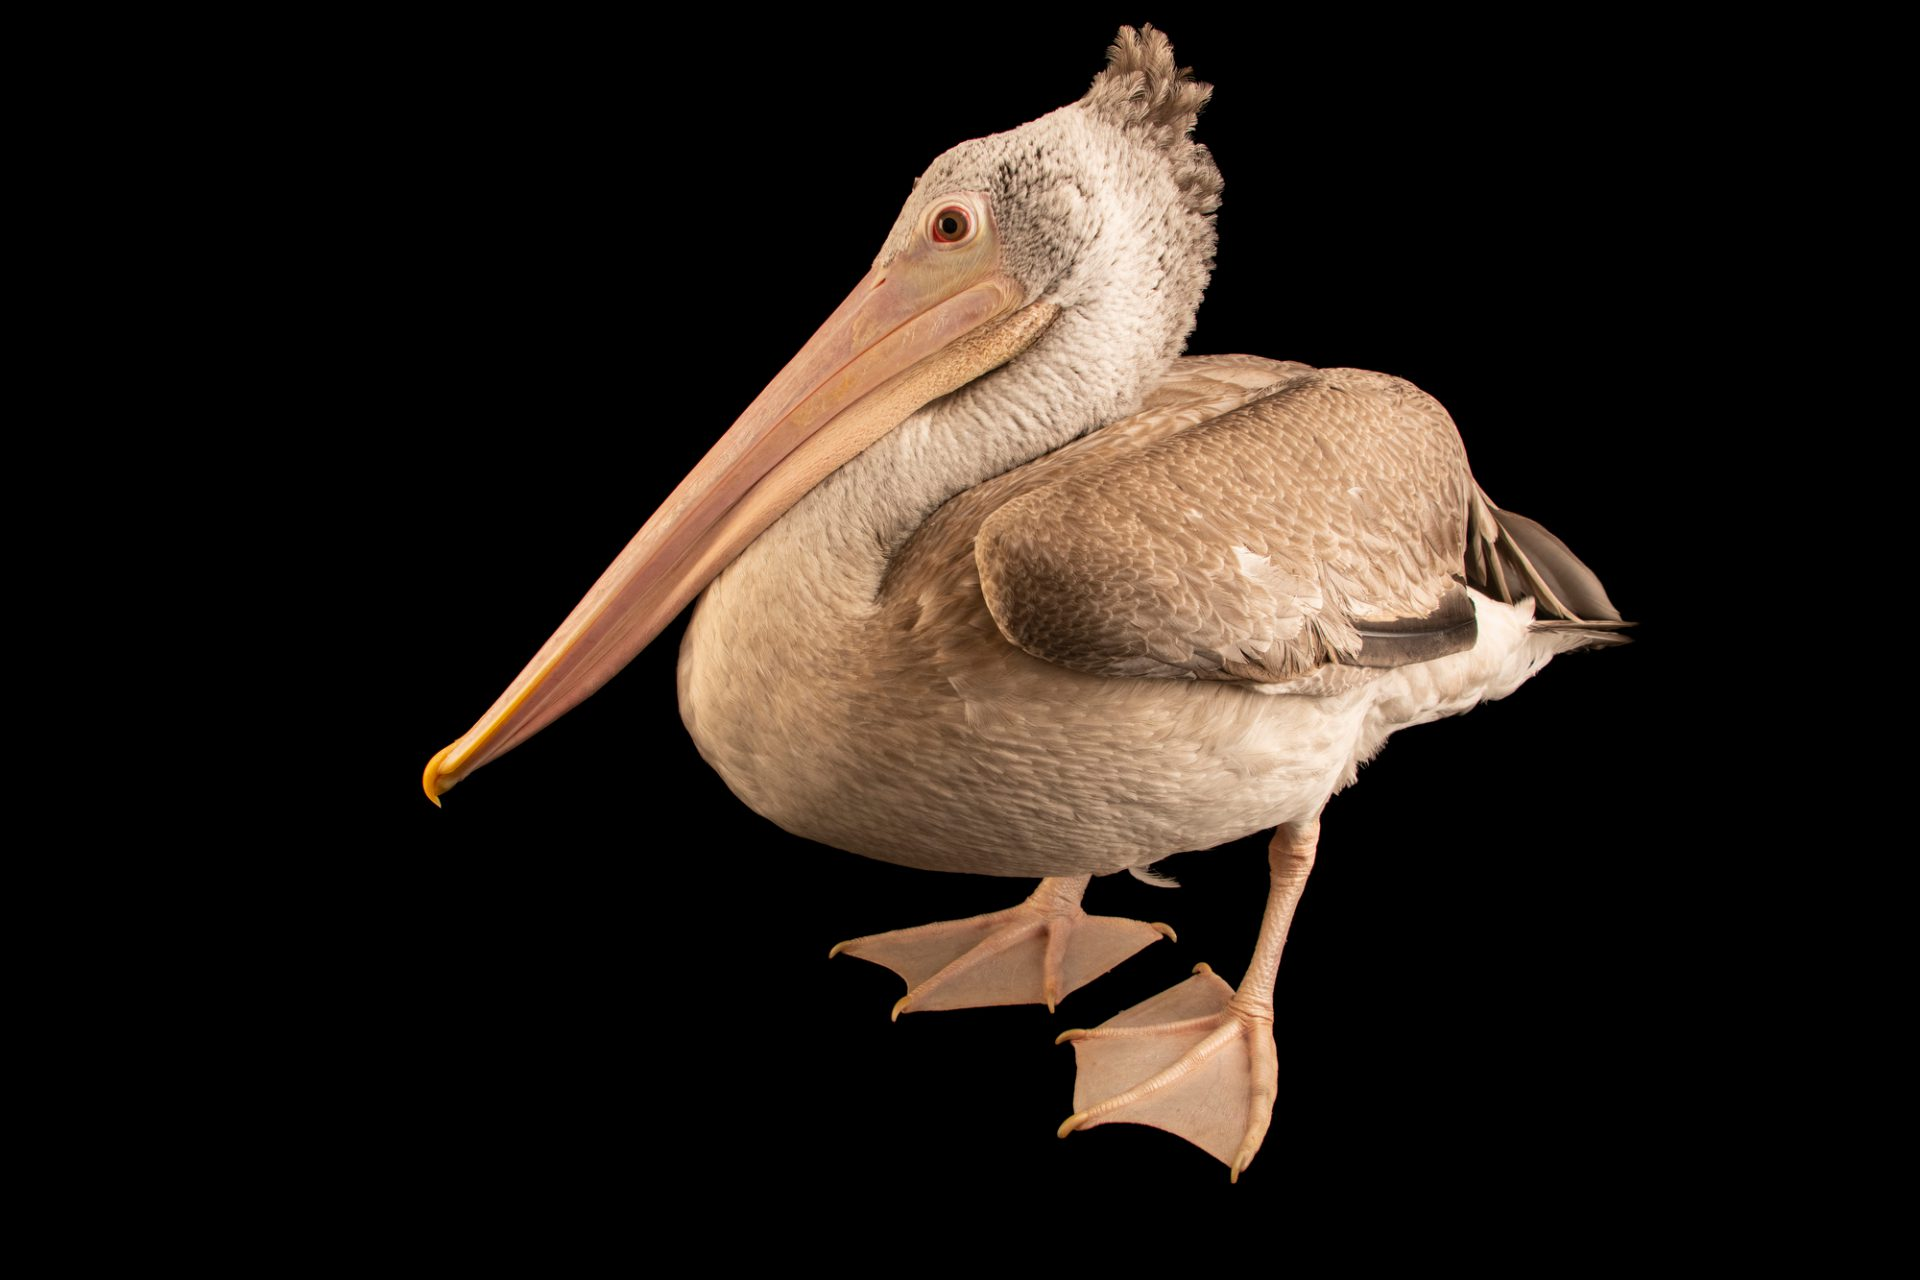 Photo: Spot-billed Pelican (Pelecanus philippensis) at the Angkor Centre for Conservation of Biodiversity (ACCB) in Siem Reap, Cambodia.